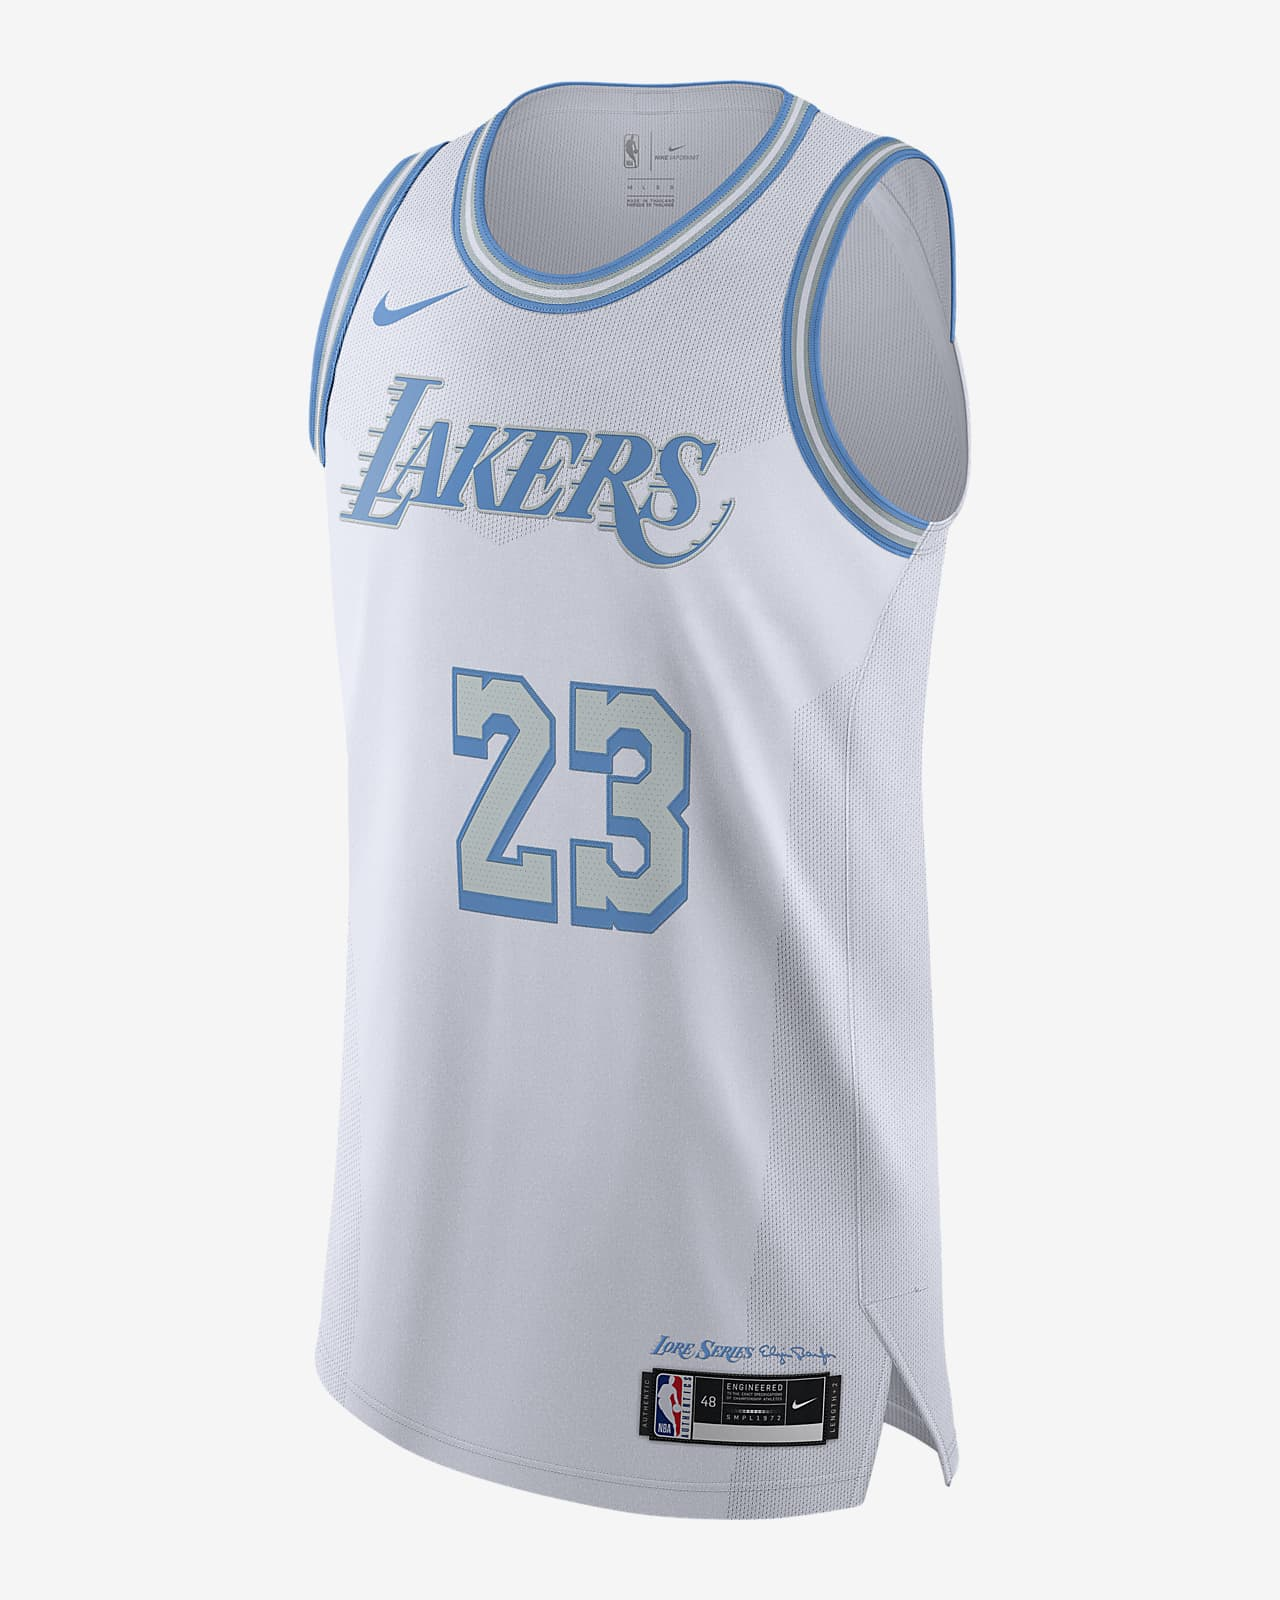 Maillot Nike NBA Authentic Los Angeles Lakers City Edition